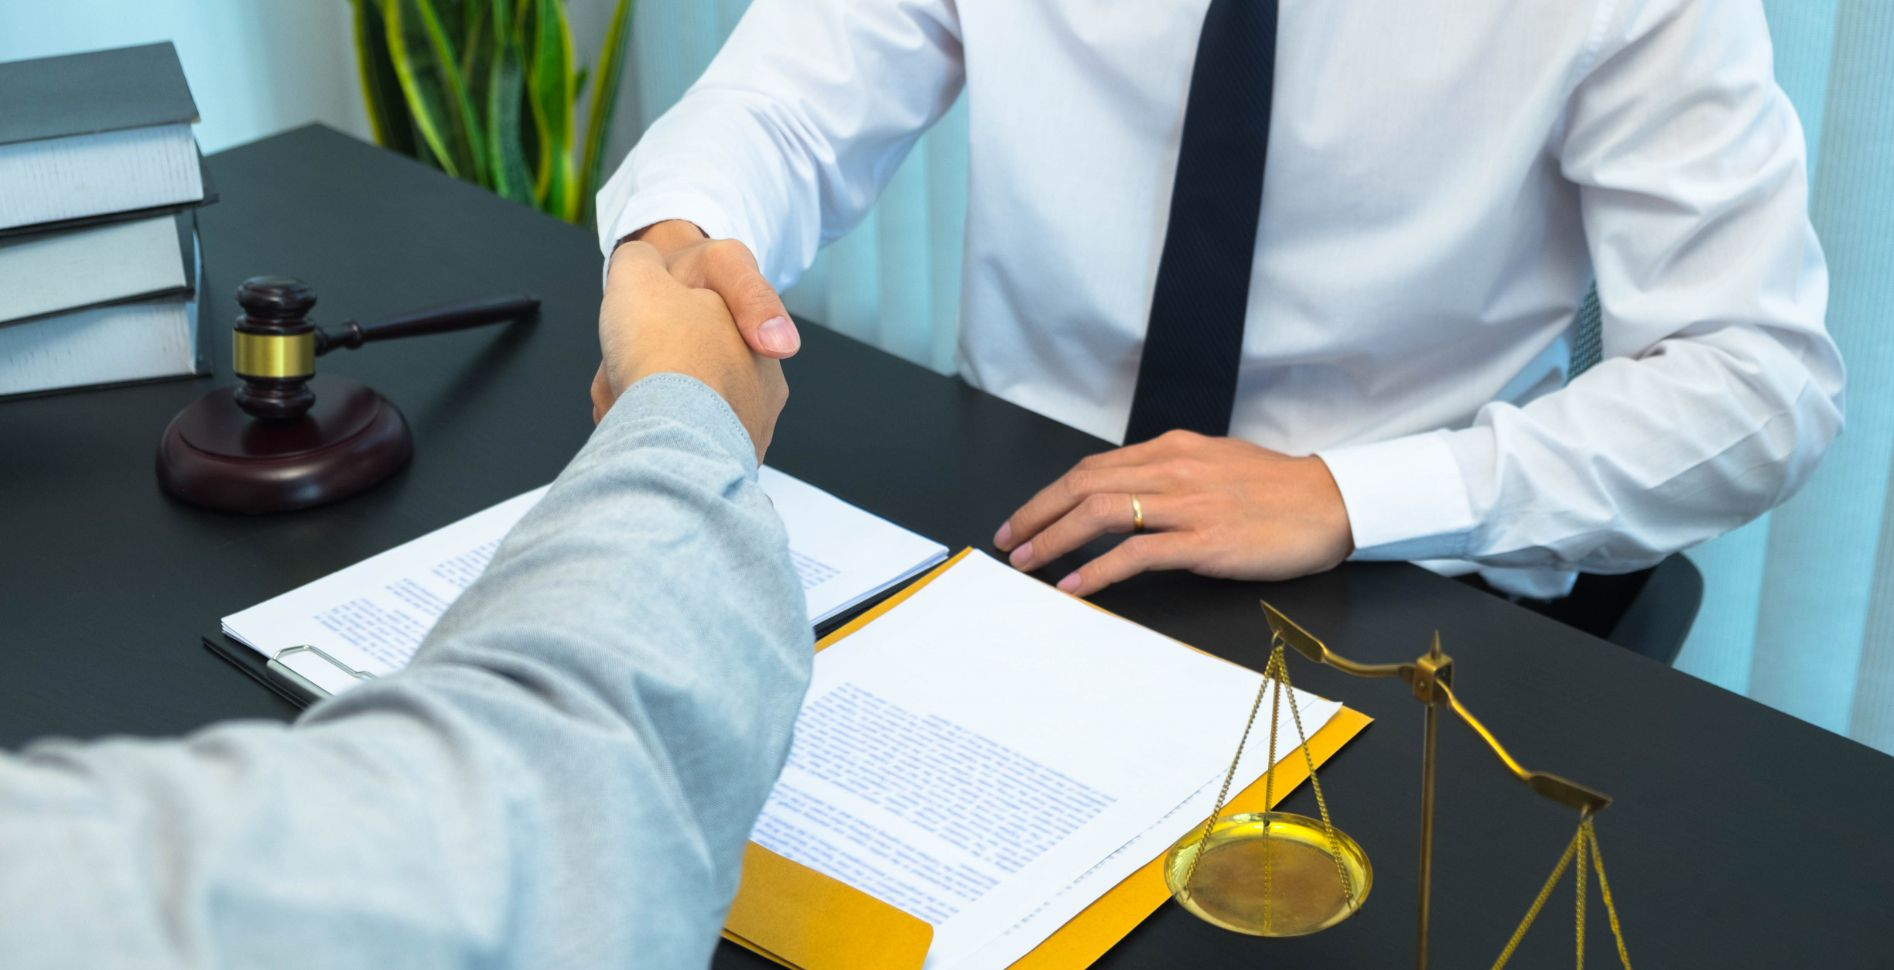 client-shaking-hands-with-lawyer